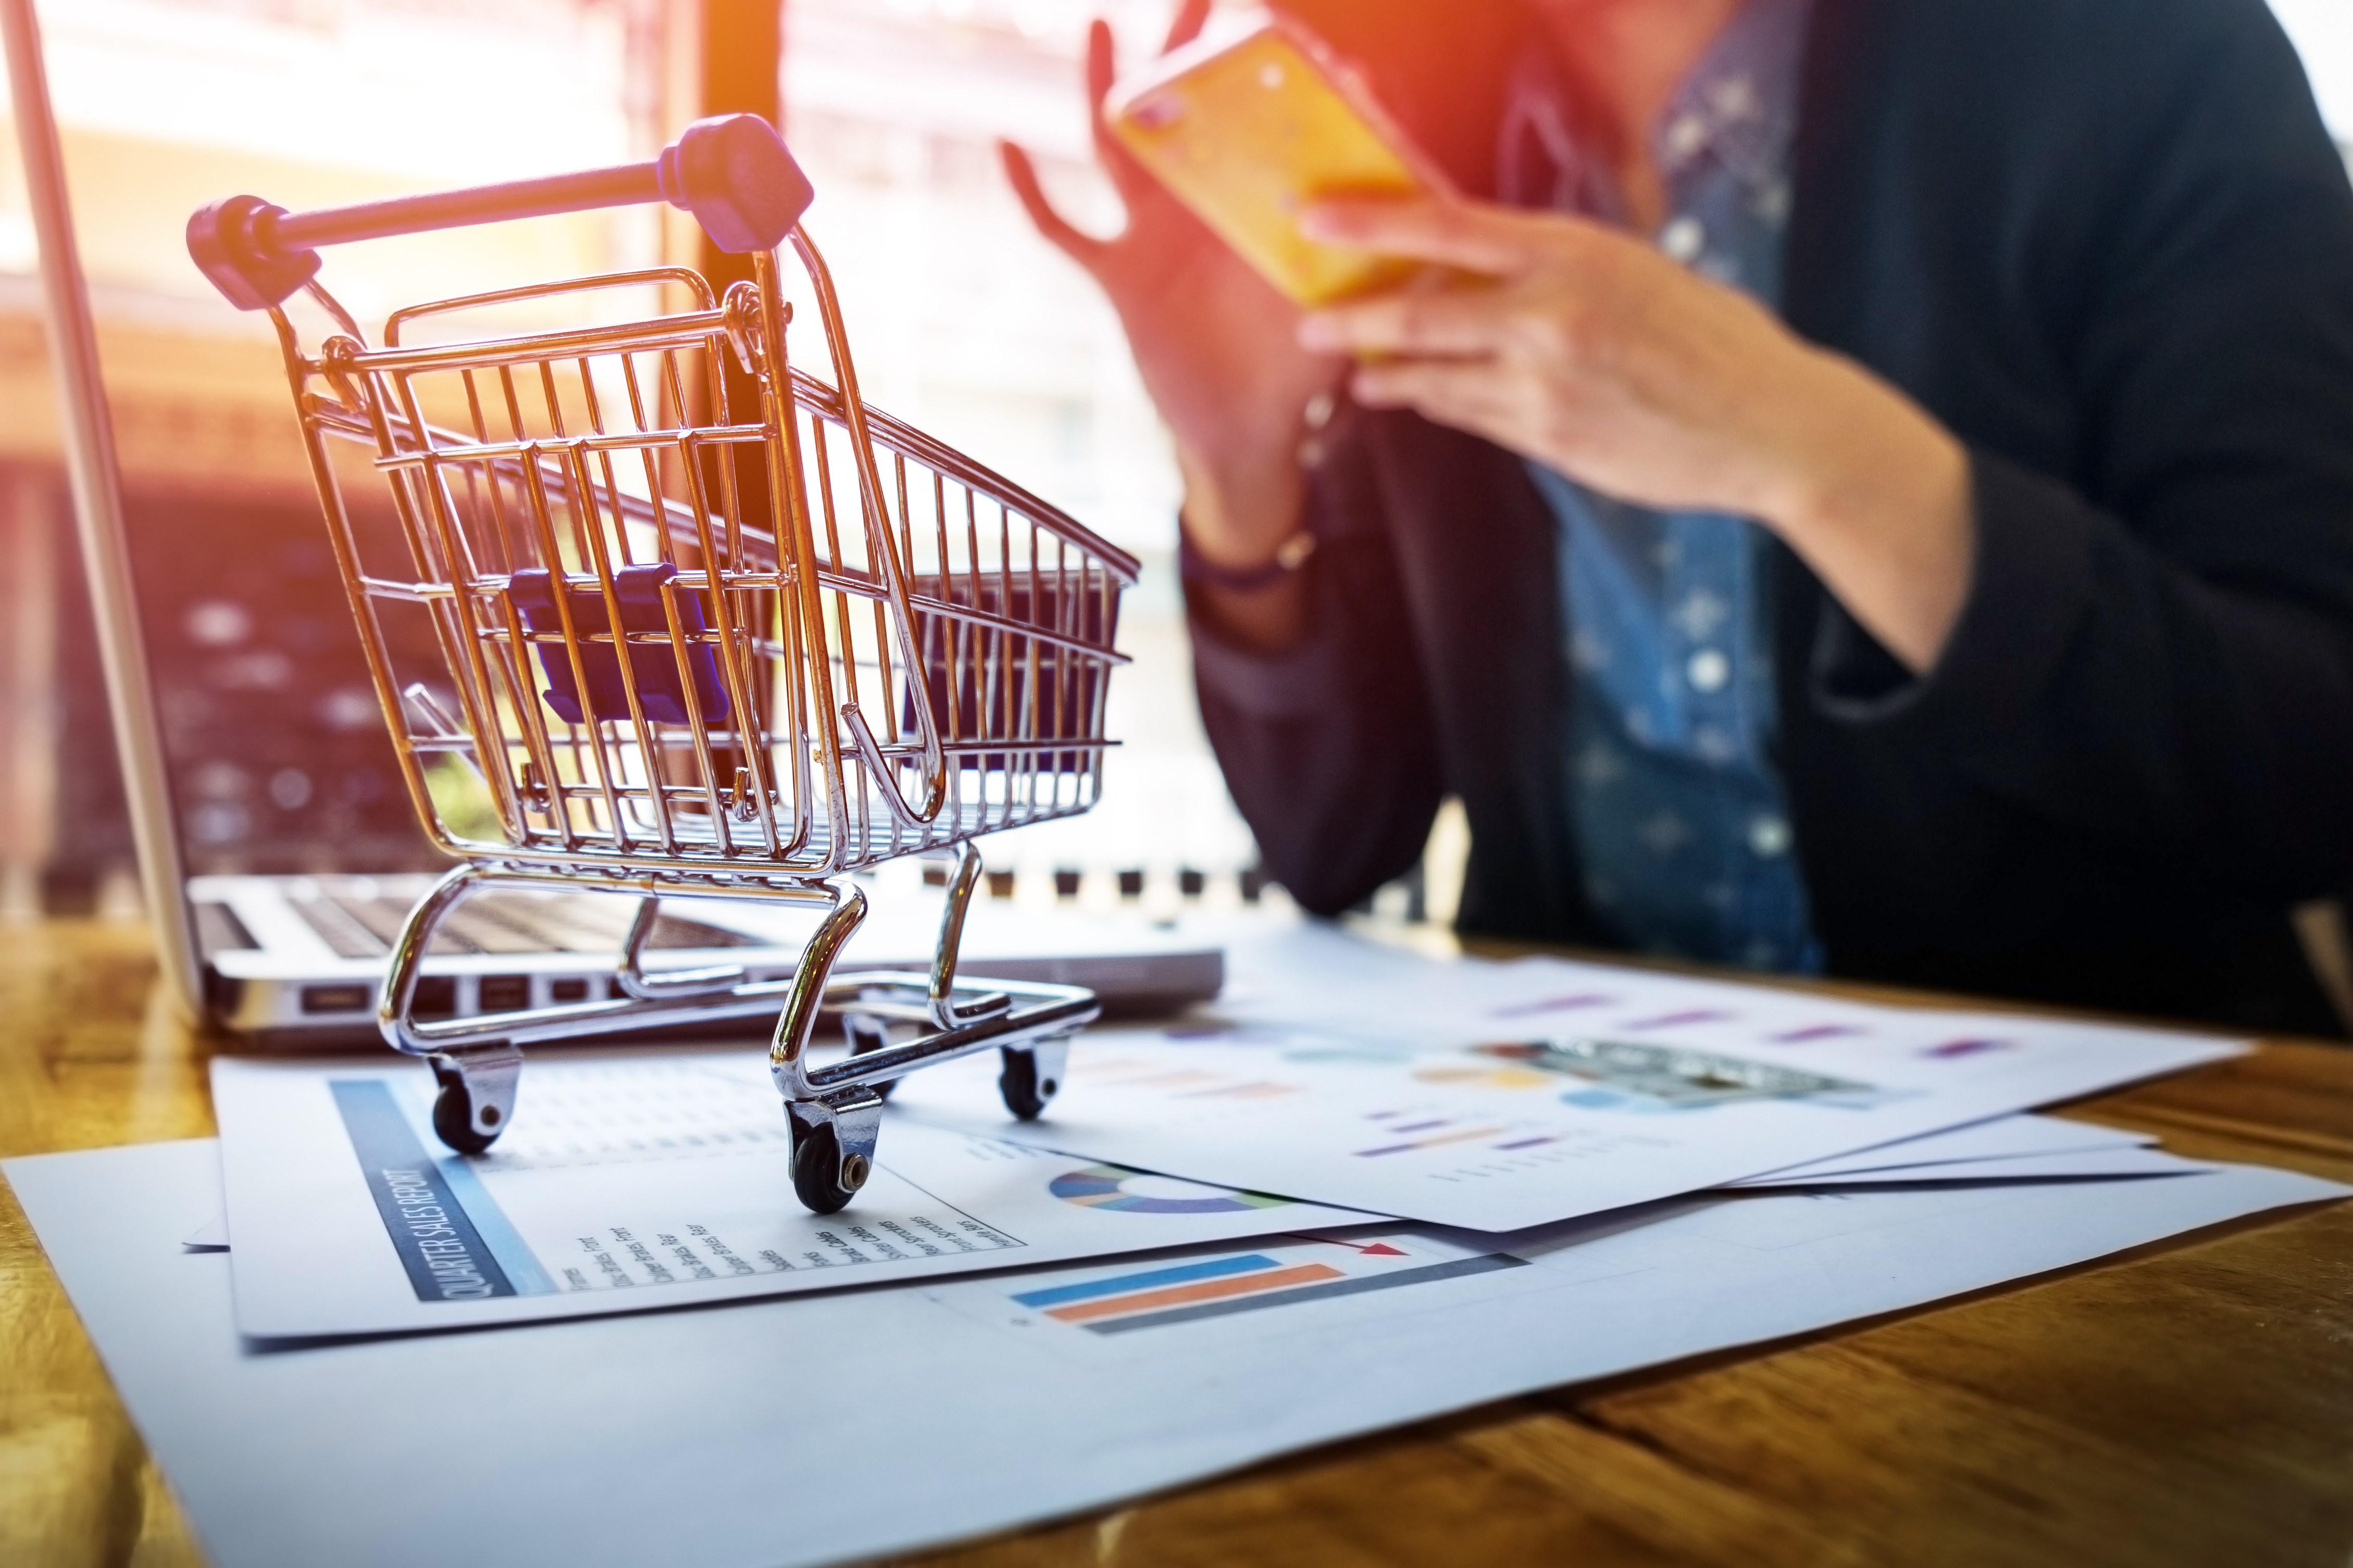 B2B Buyers Have High Ecommerce Expectations